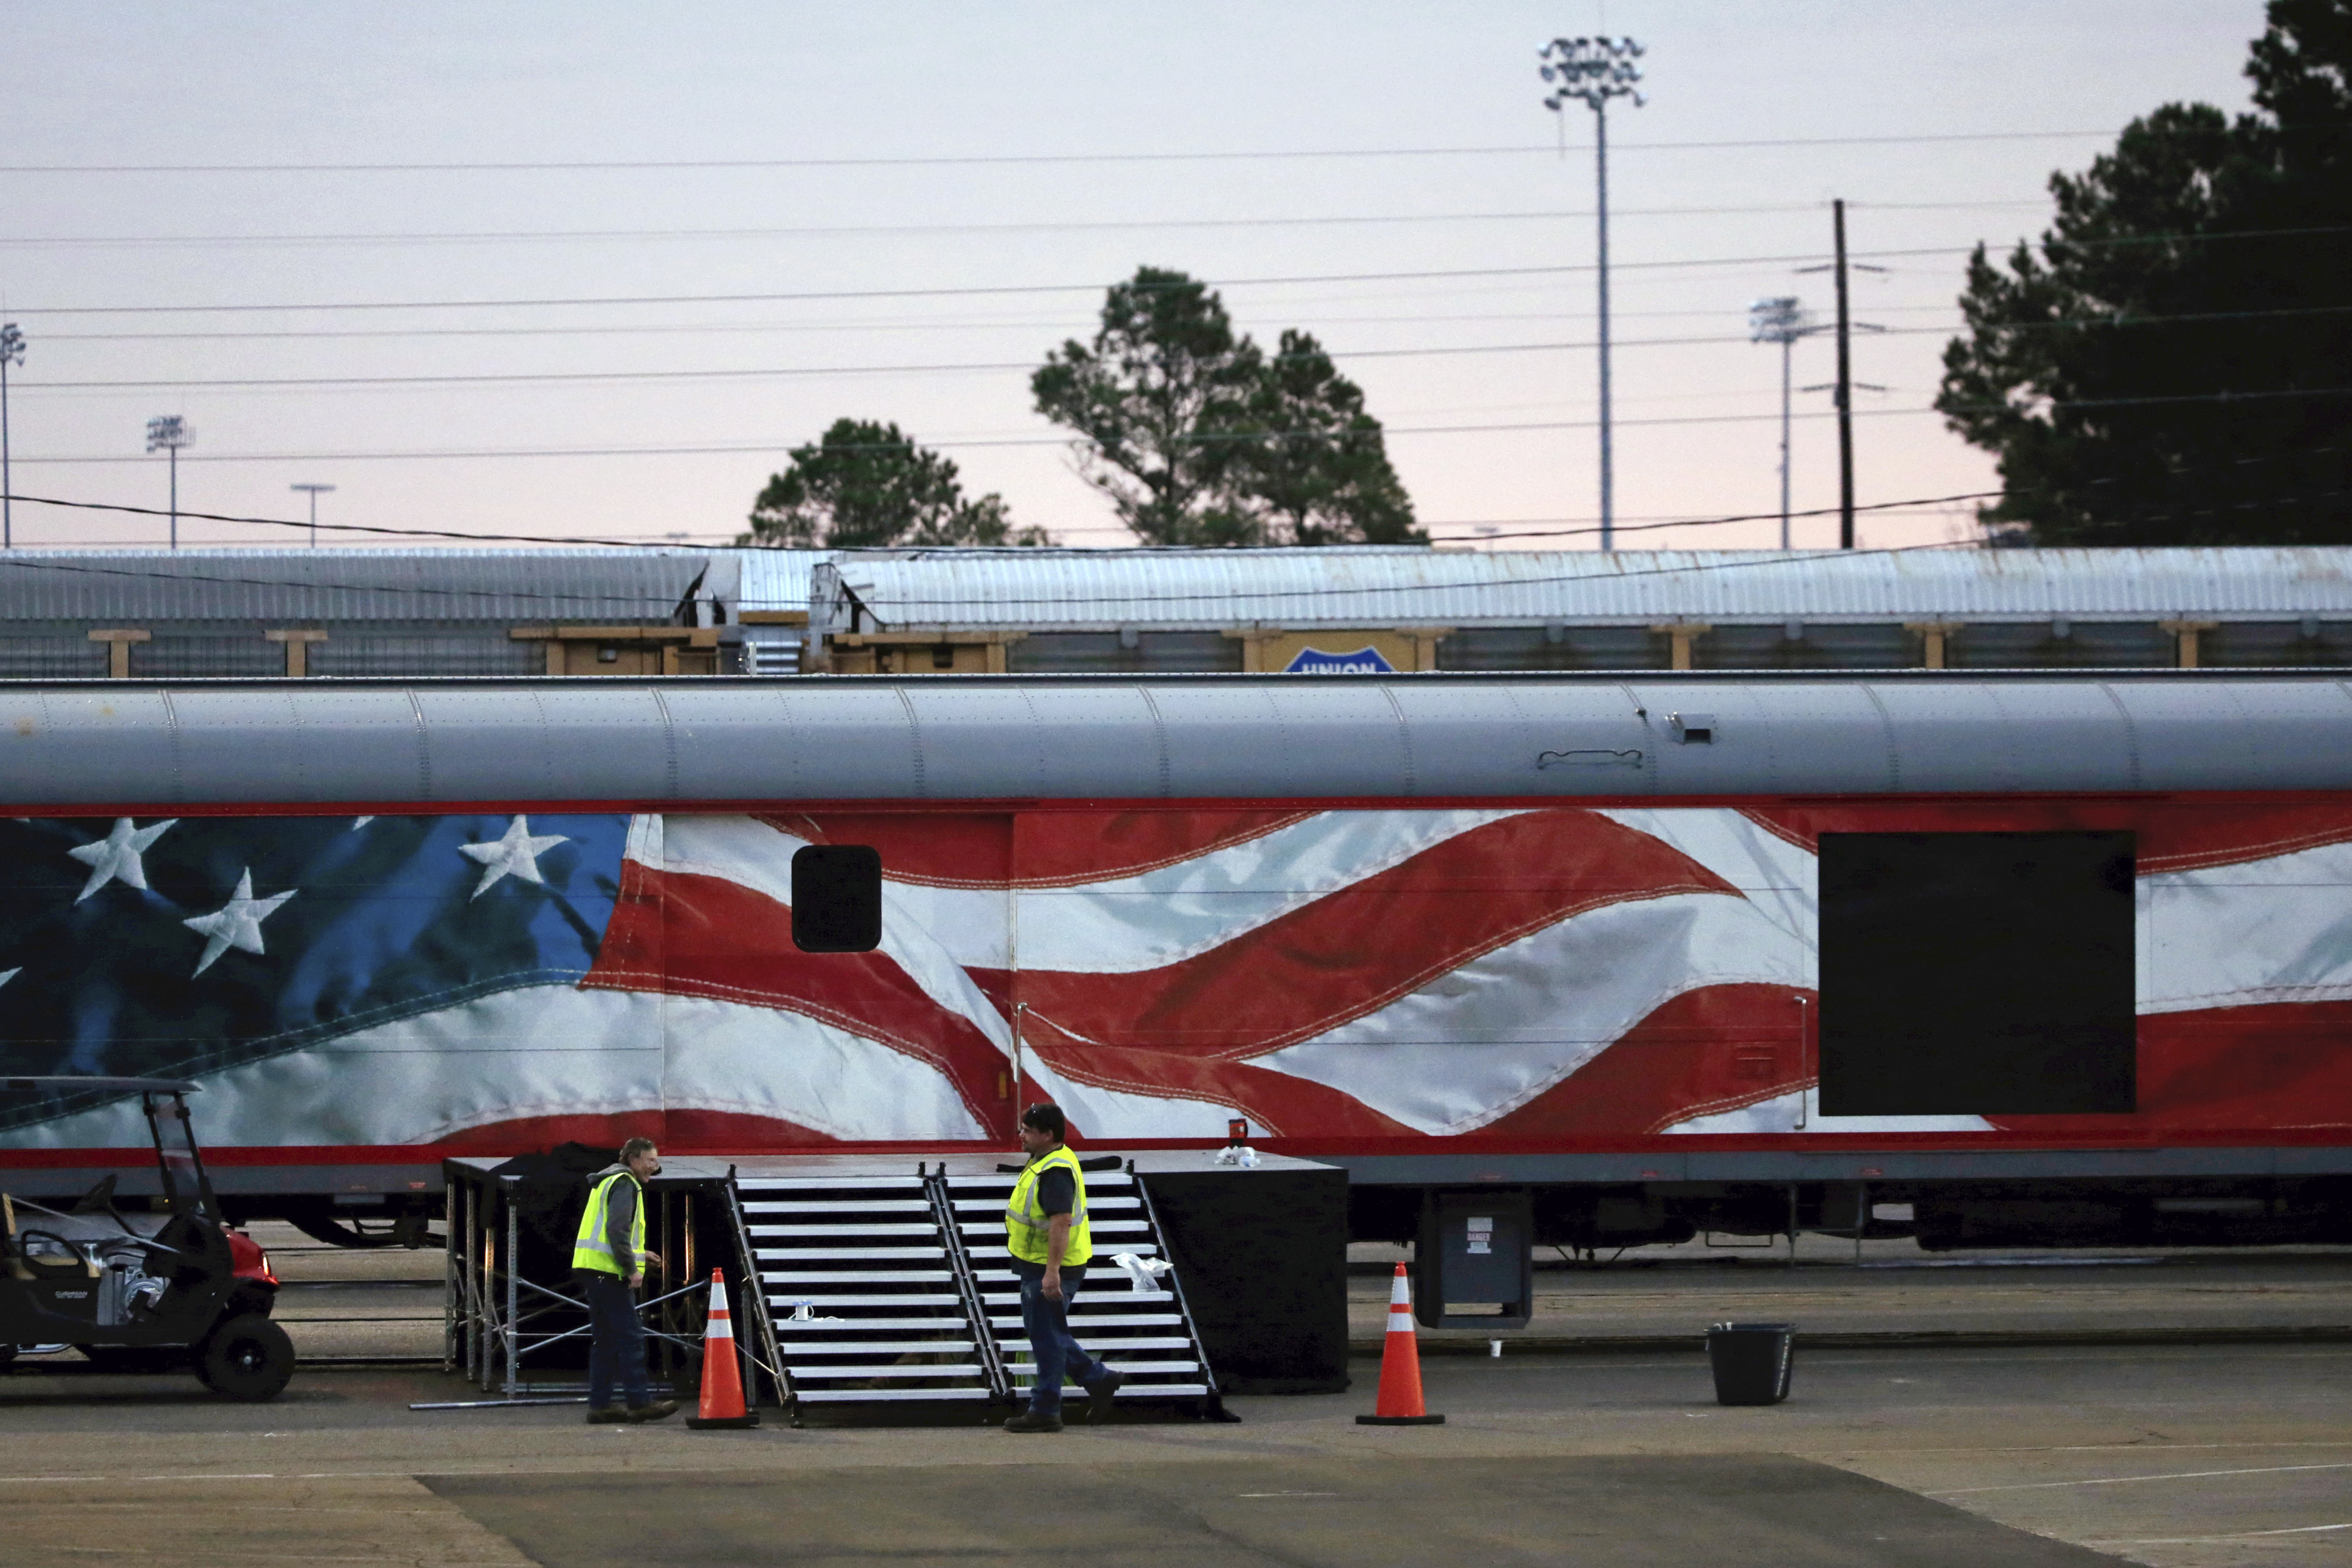 Workers prepare for a departure ceremony of the casket of former President George H.W. Bush at Union Pacific Westfield auto facility Thursday, Dec. 6, 2018, in Spring. The Plexiglass door, right, will allow the public to see Bush's casket as it hauled on the route. (AP Photo/Kiichiro Sato)